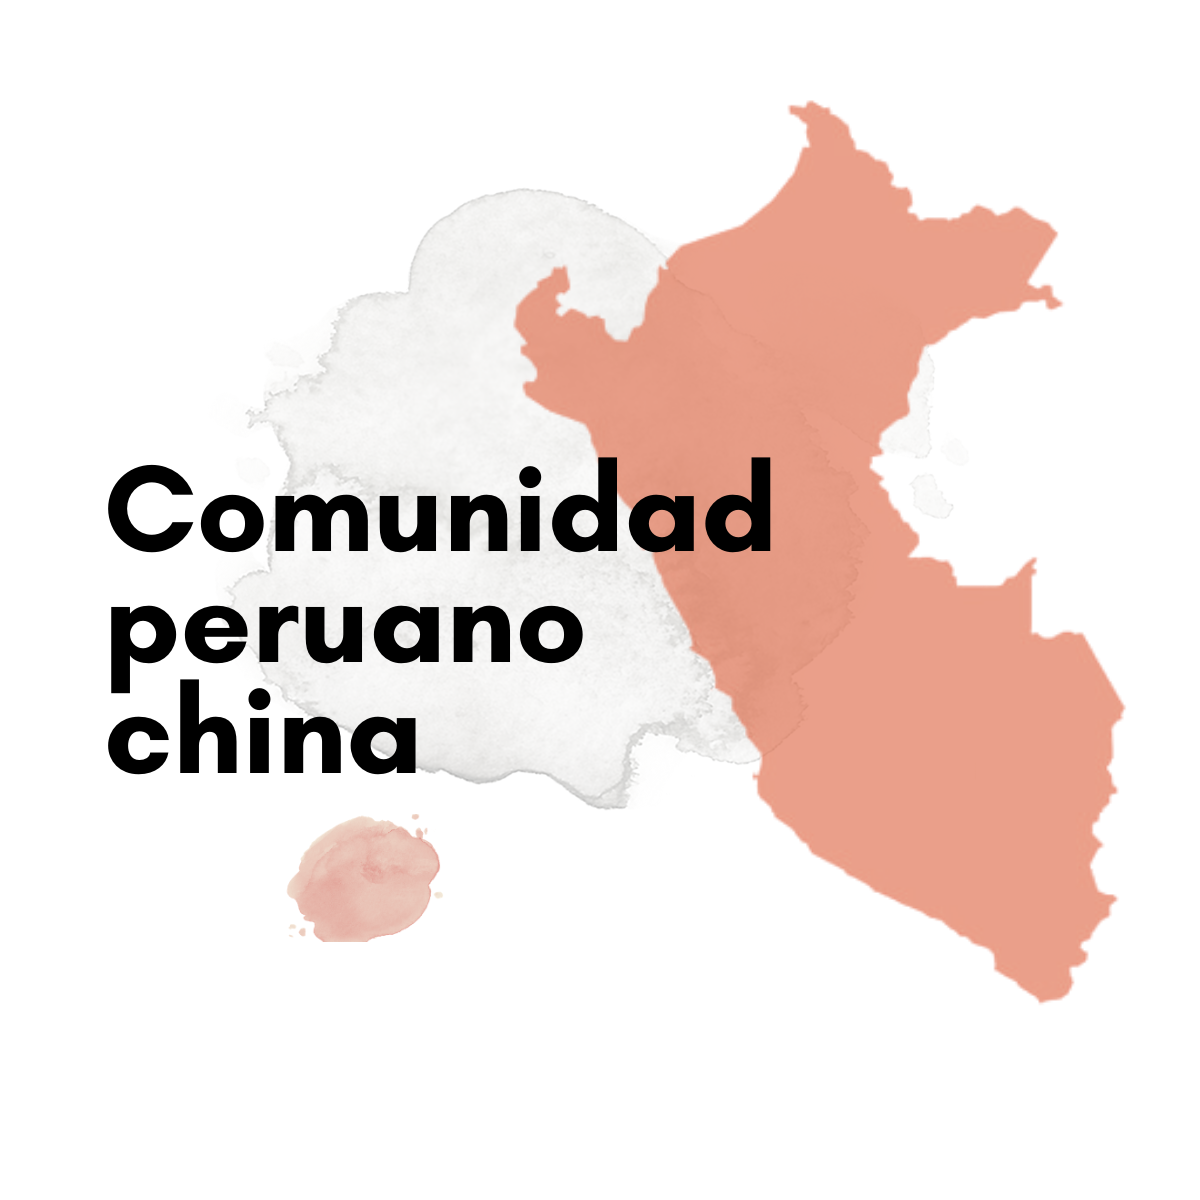 Comunidad peruano china